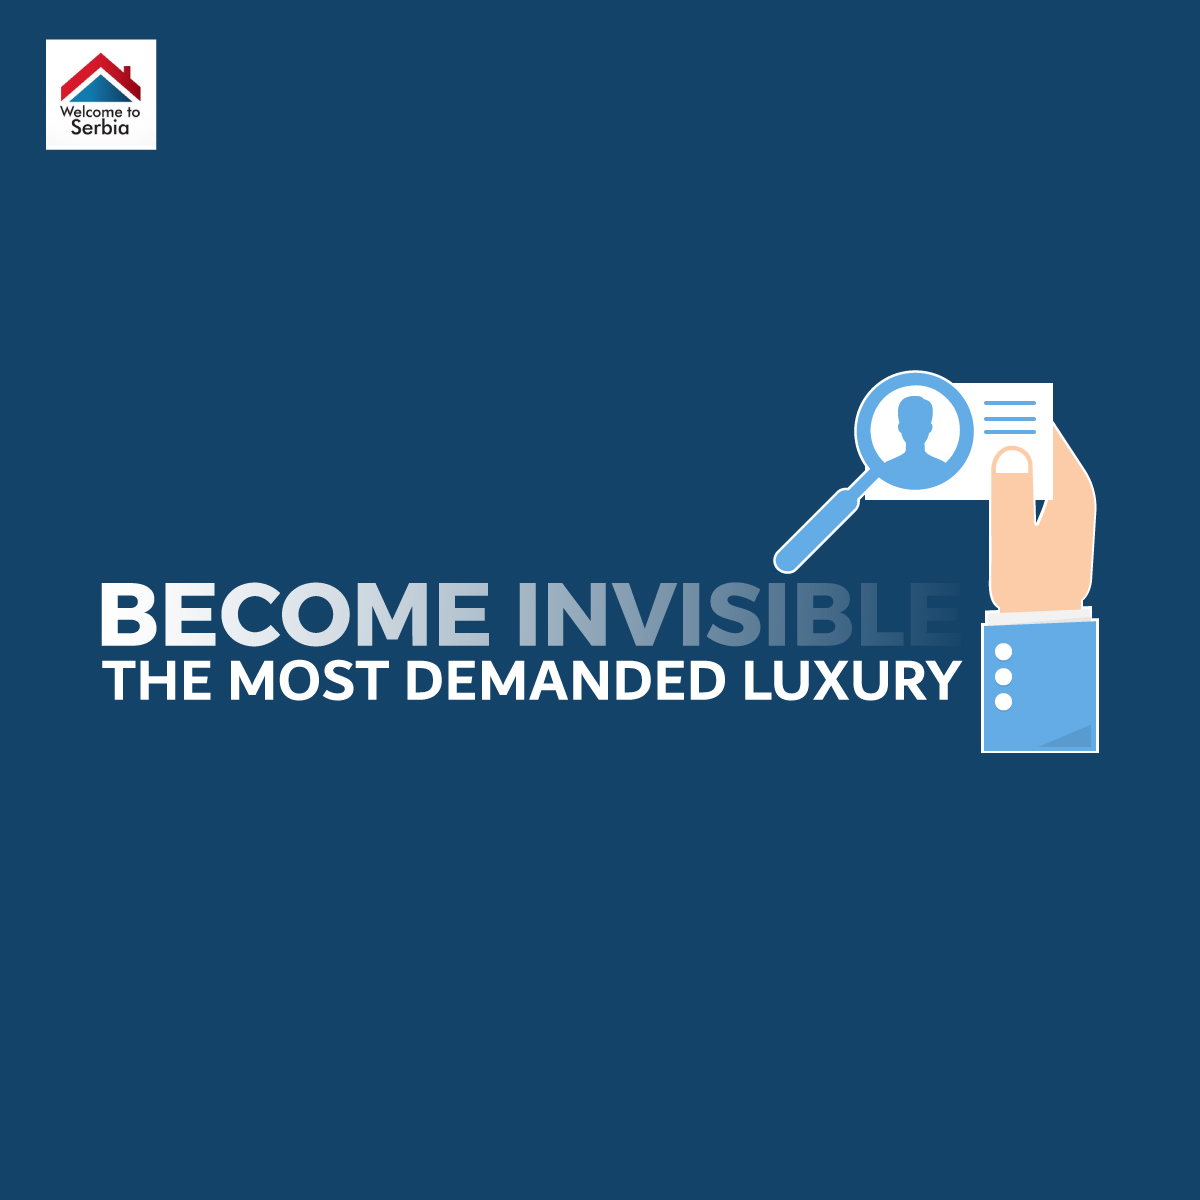 Become invisible – The most demanded luxury